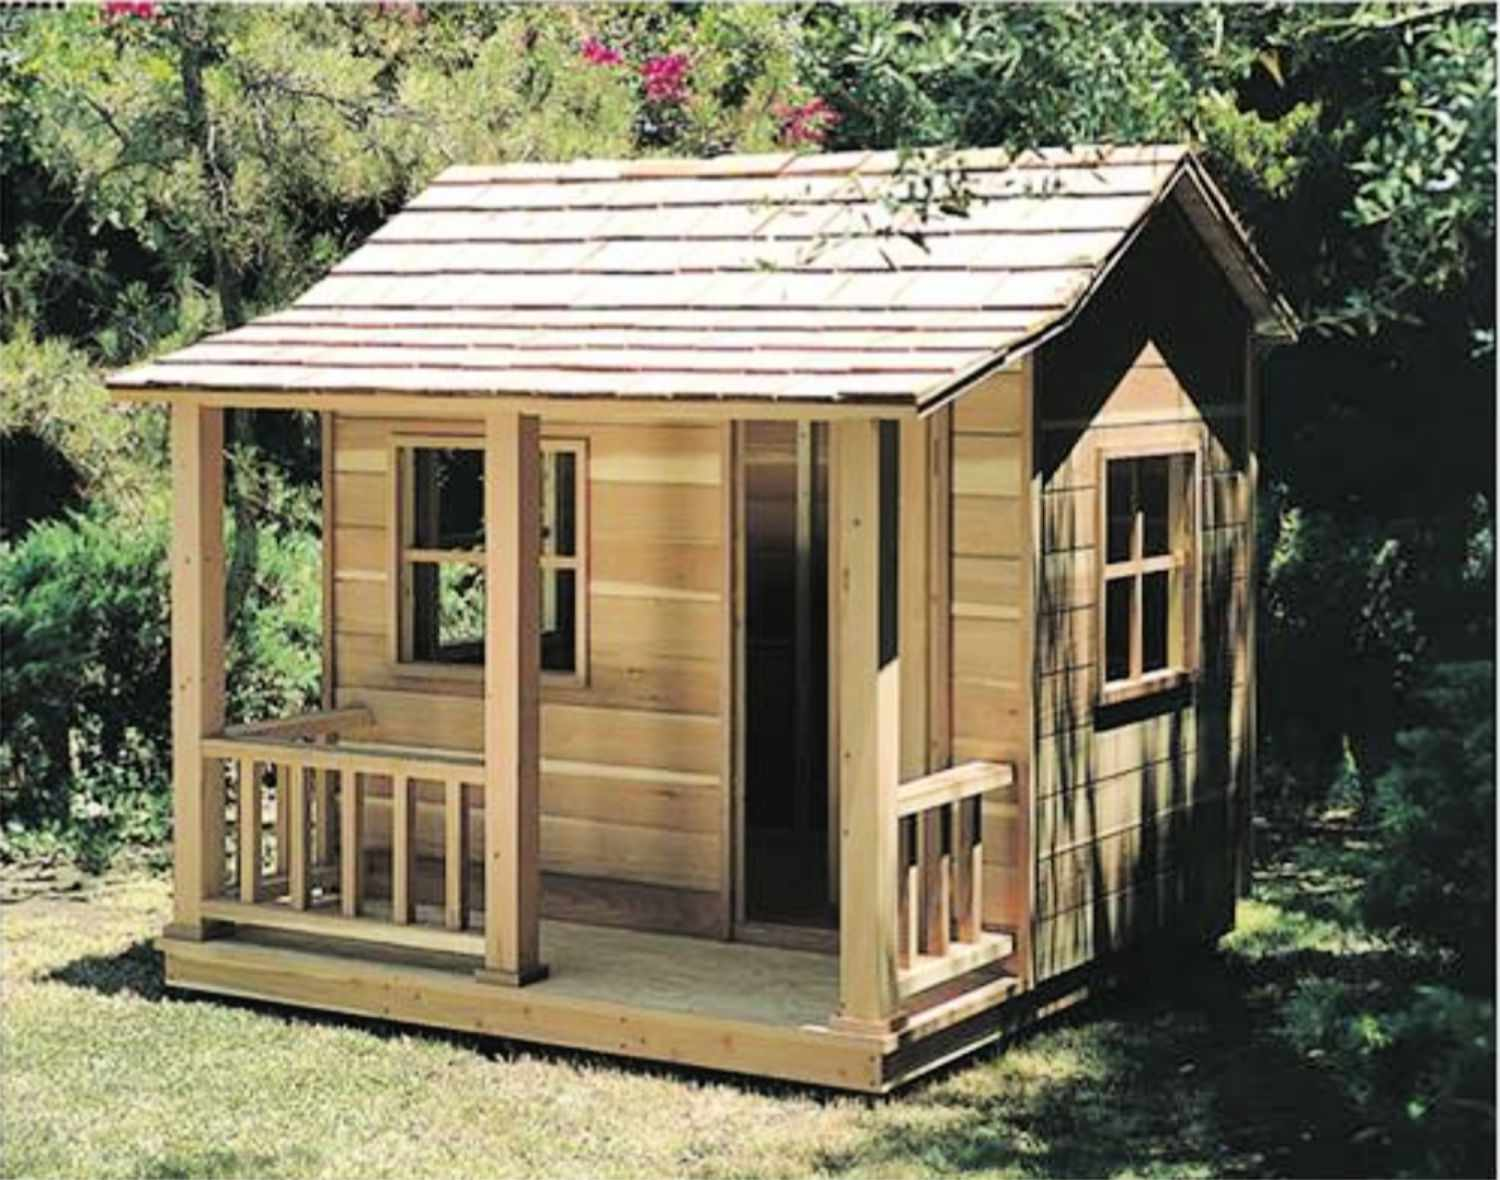 16 Free Backyard Playhouse Plans for Kids